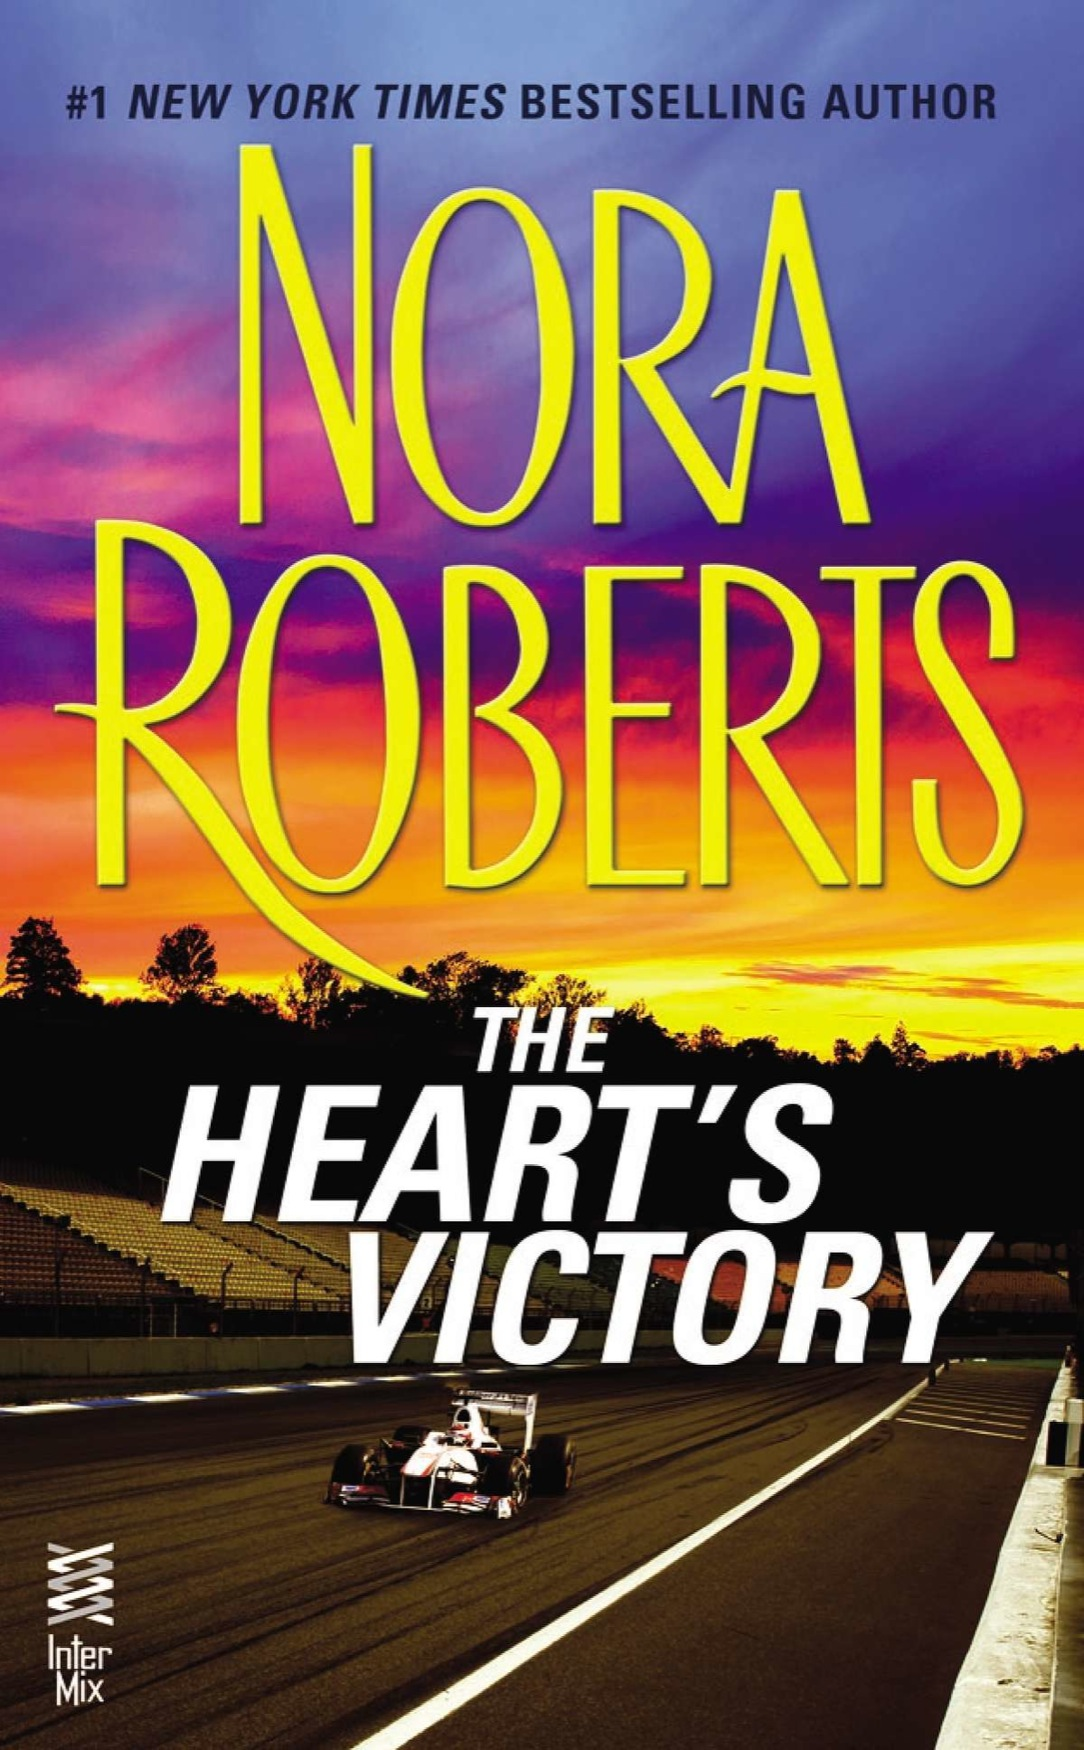 The Heart's Victory (2012) by Nora Roberts